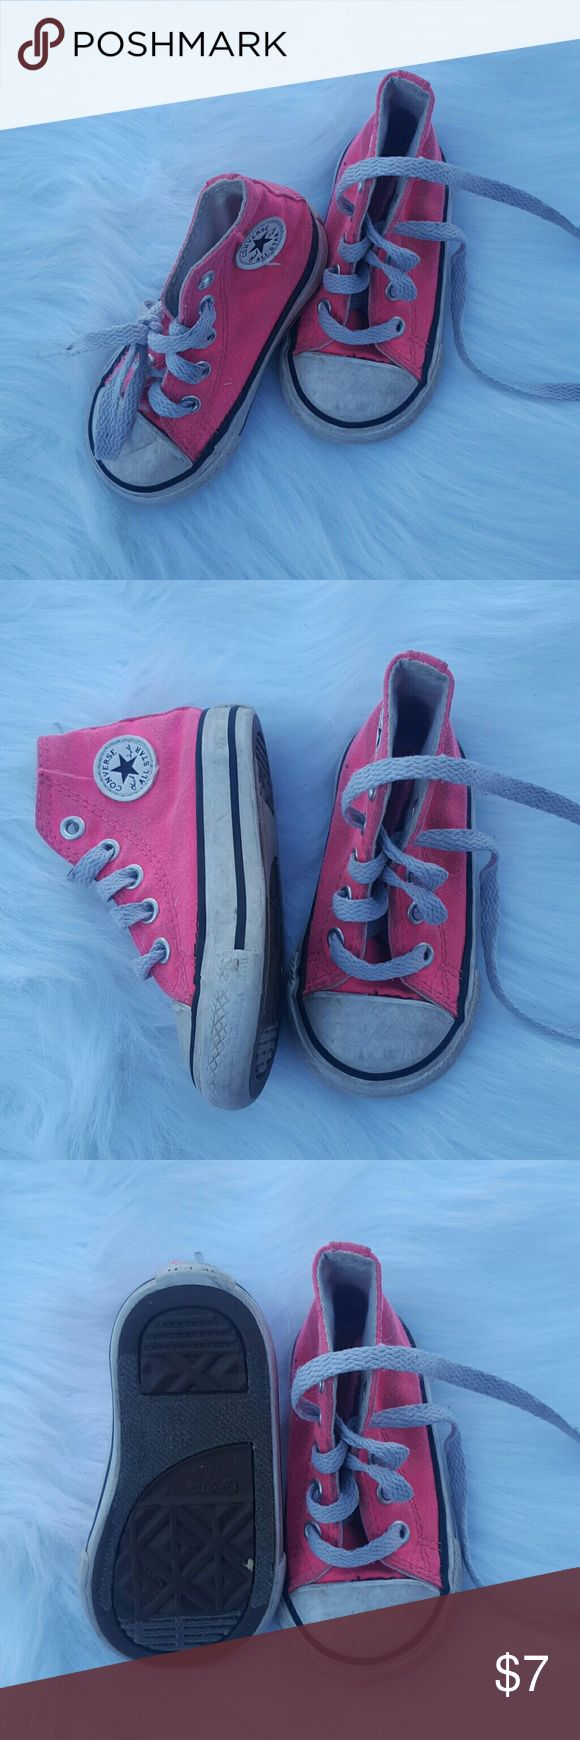 Toddler Shoe Bundle Toddler pink high top Converse, good condition but needs cleaning size 4. Blue & Pink Shoes  are gently used size 3, Sofia the First flip flops barely used size 4. Converse Shoes Sneakers